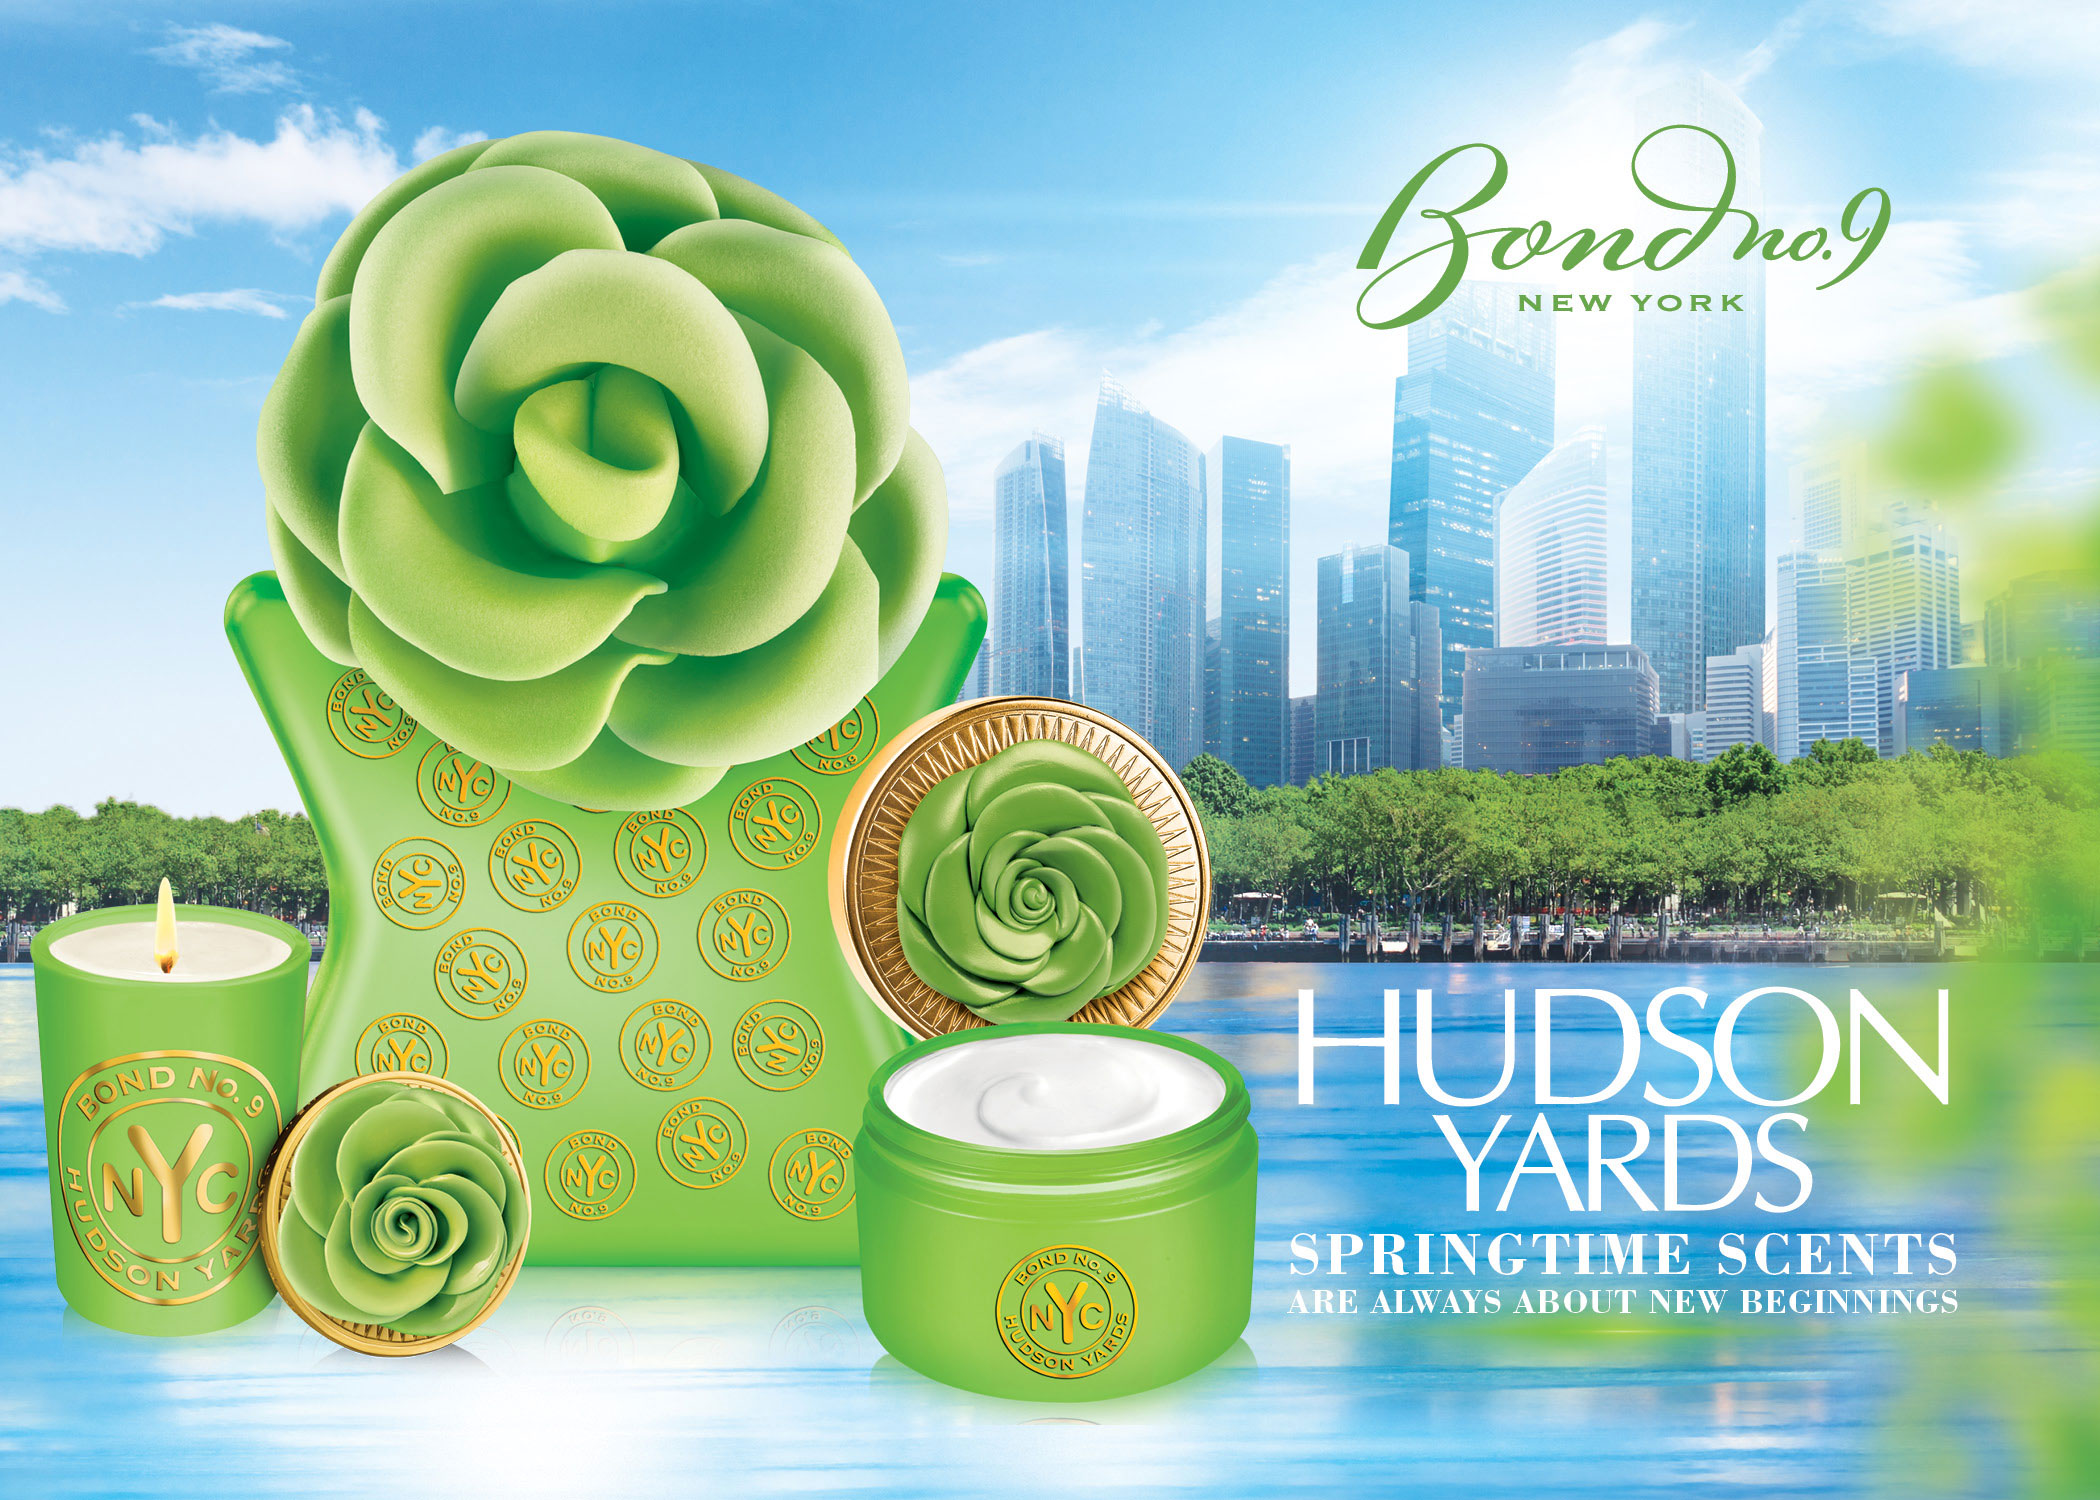 Bond No. 9 Hudson Yards